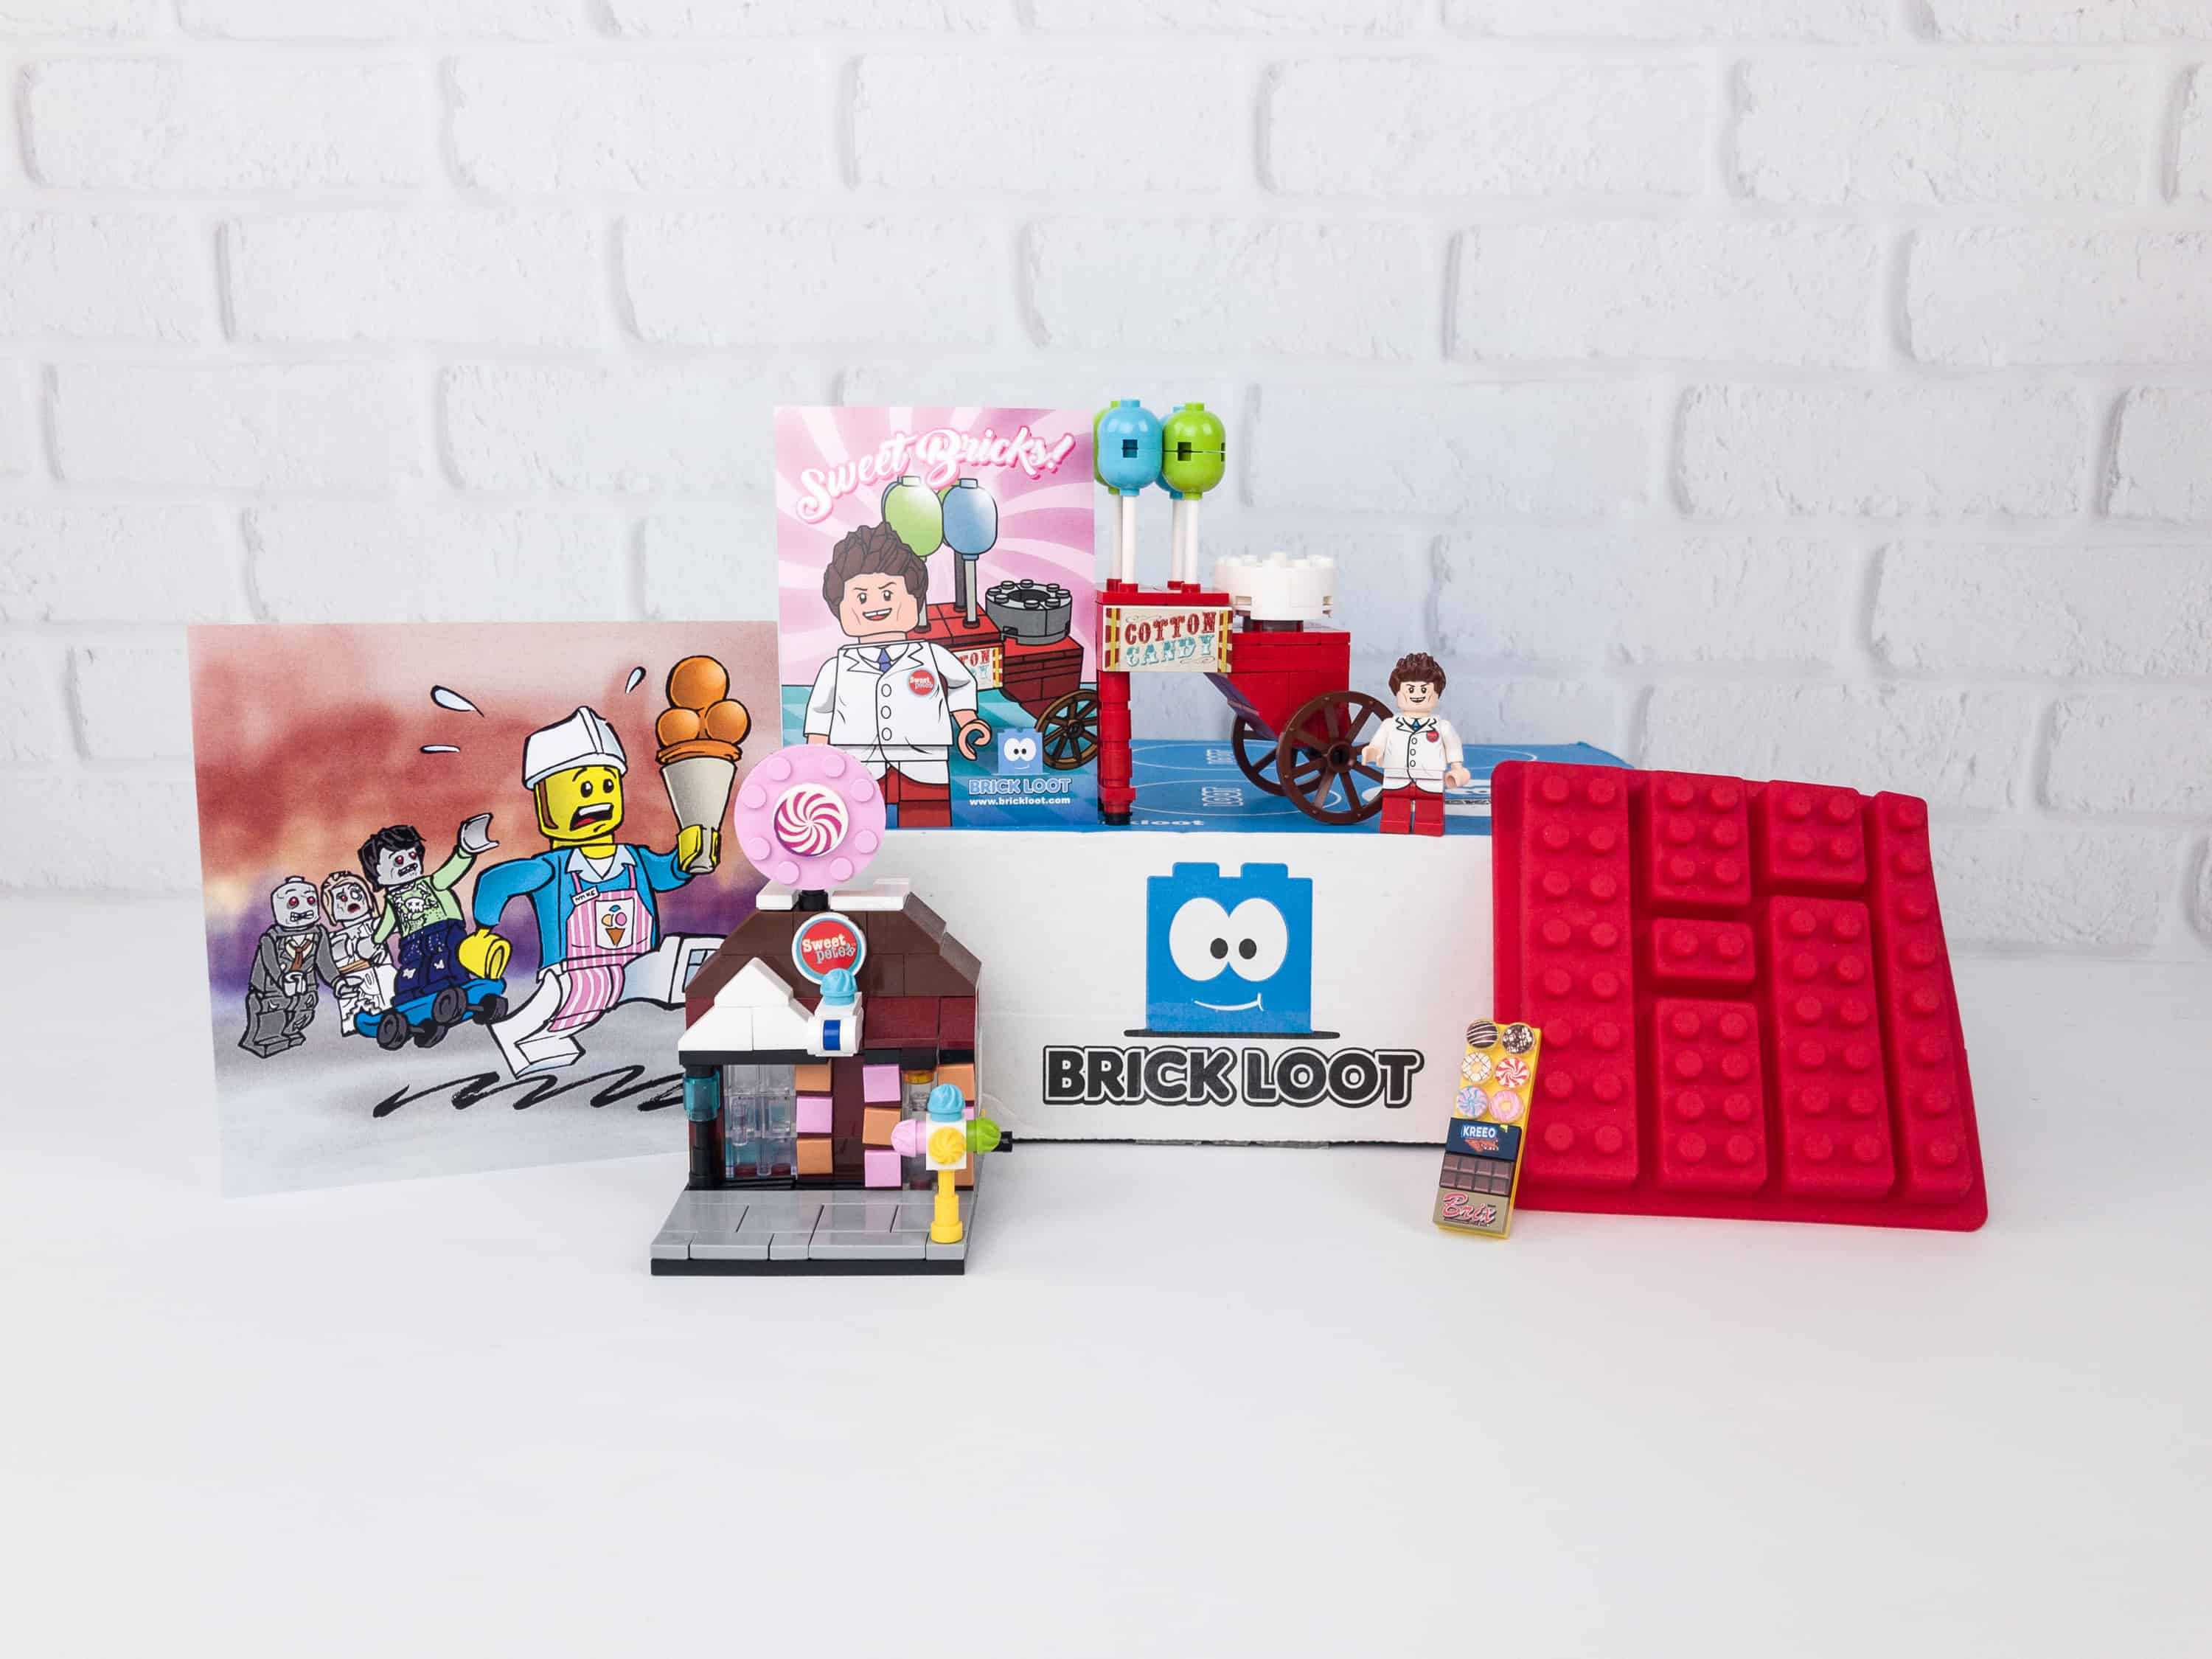 Brick Loot November 2017 Subscription Box Review & Coupon